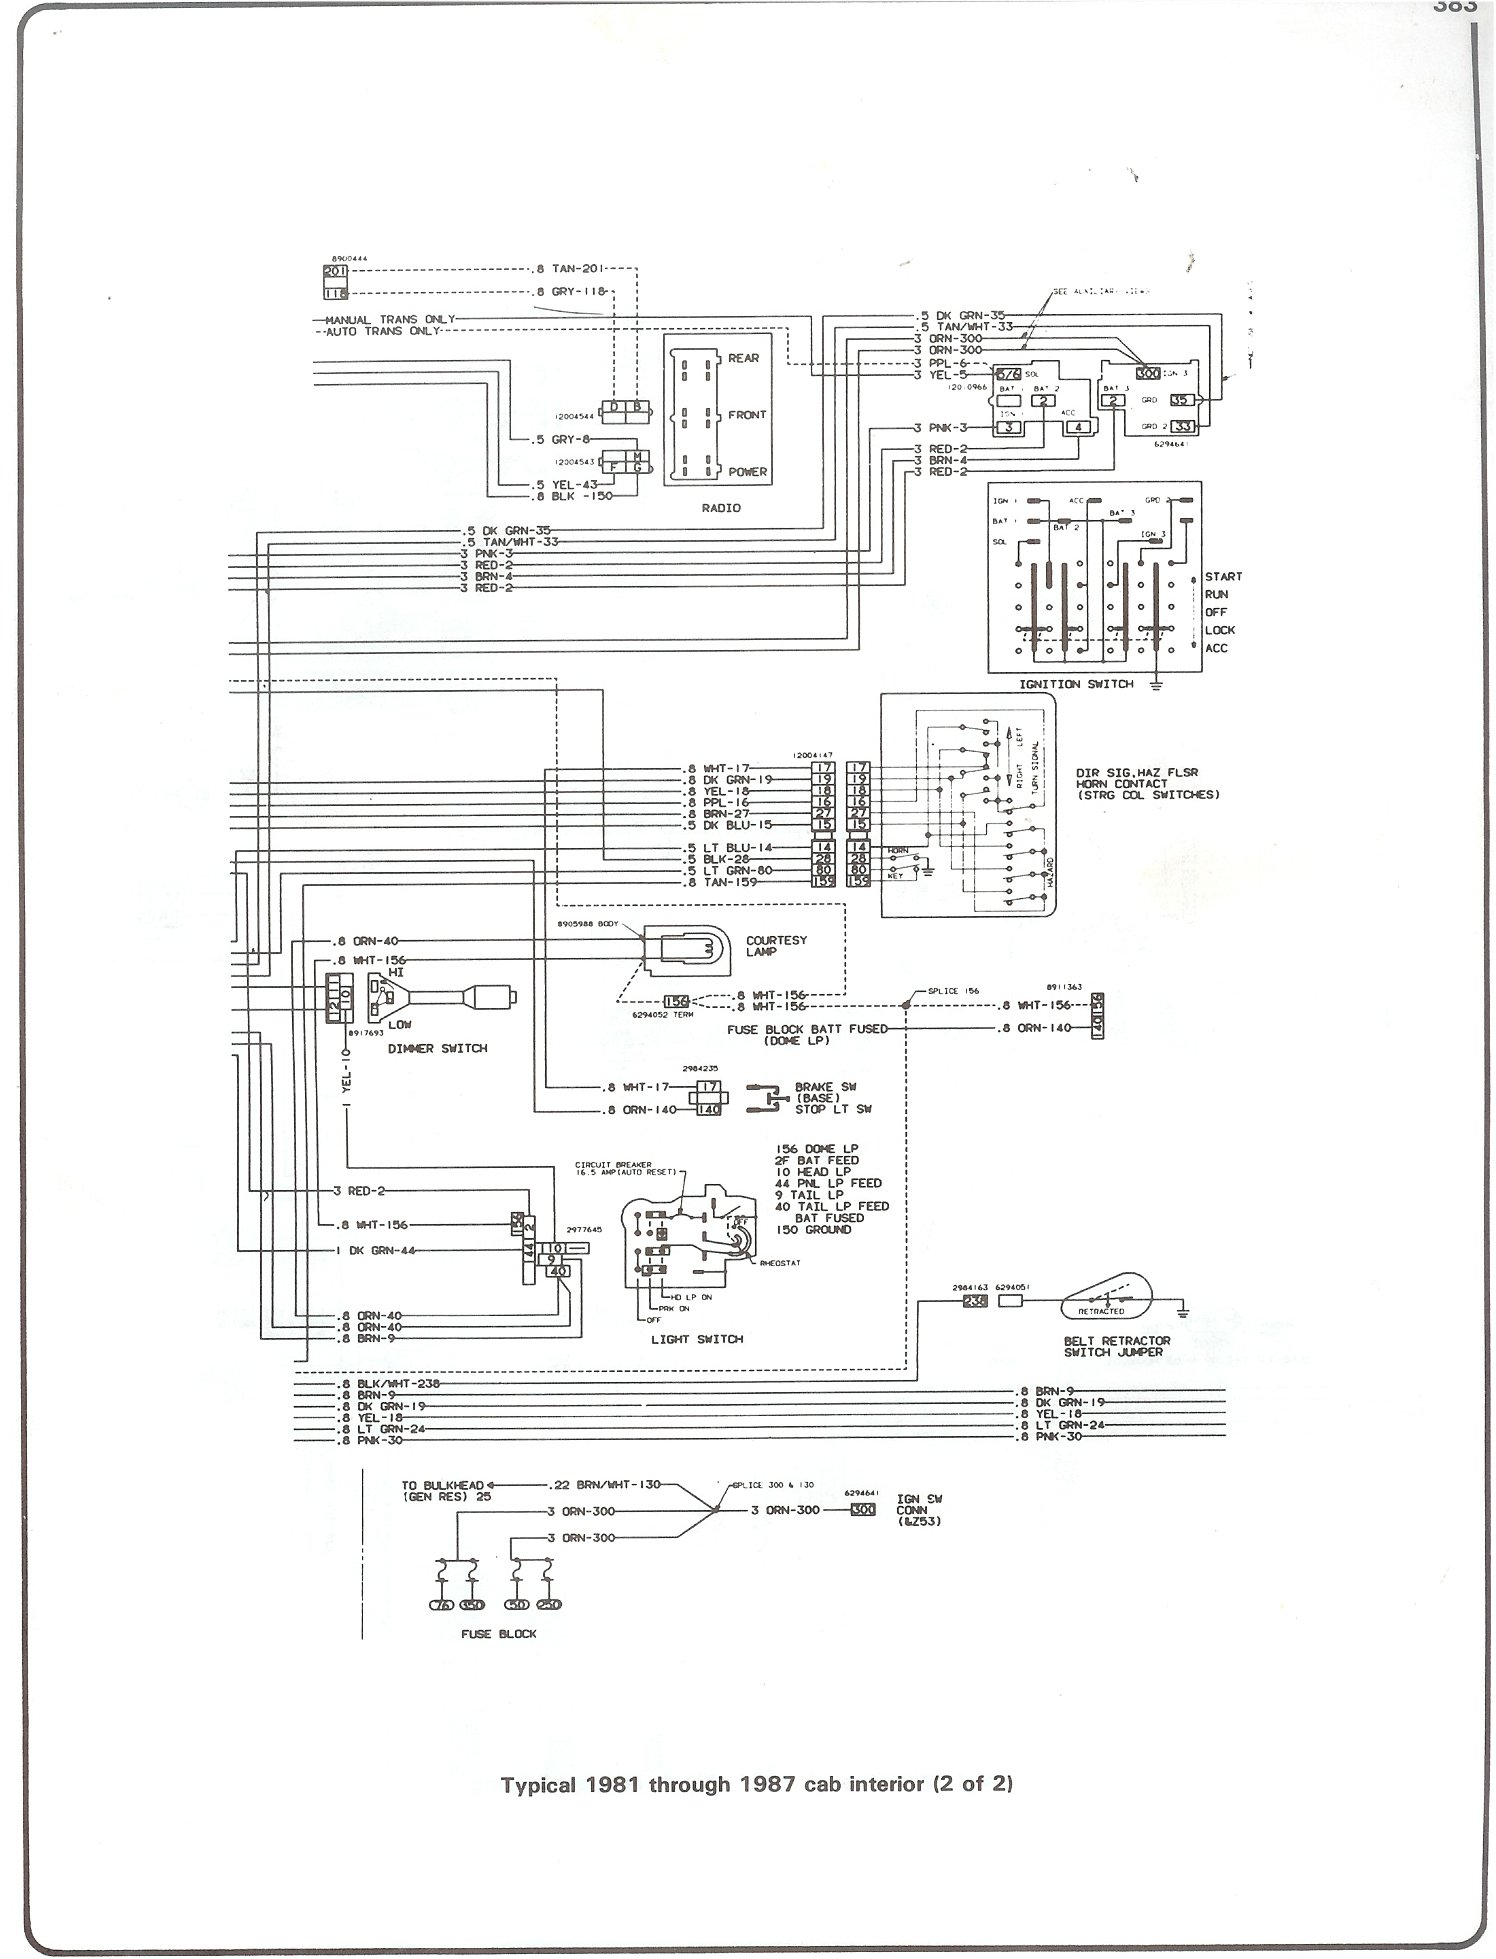 81 87_cab_inter_pg2 complete 73 87 wiring diagrams 1984 chevy c10 wiring diagram at gsmx.co